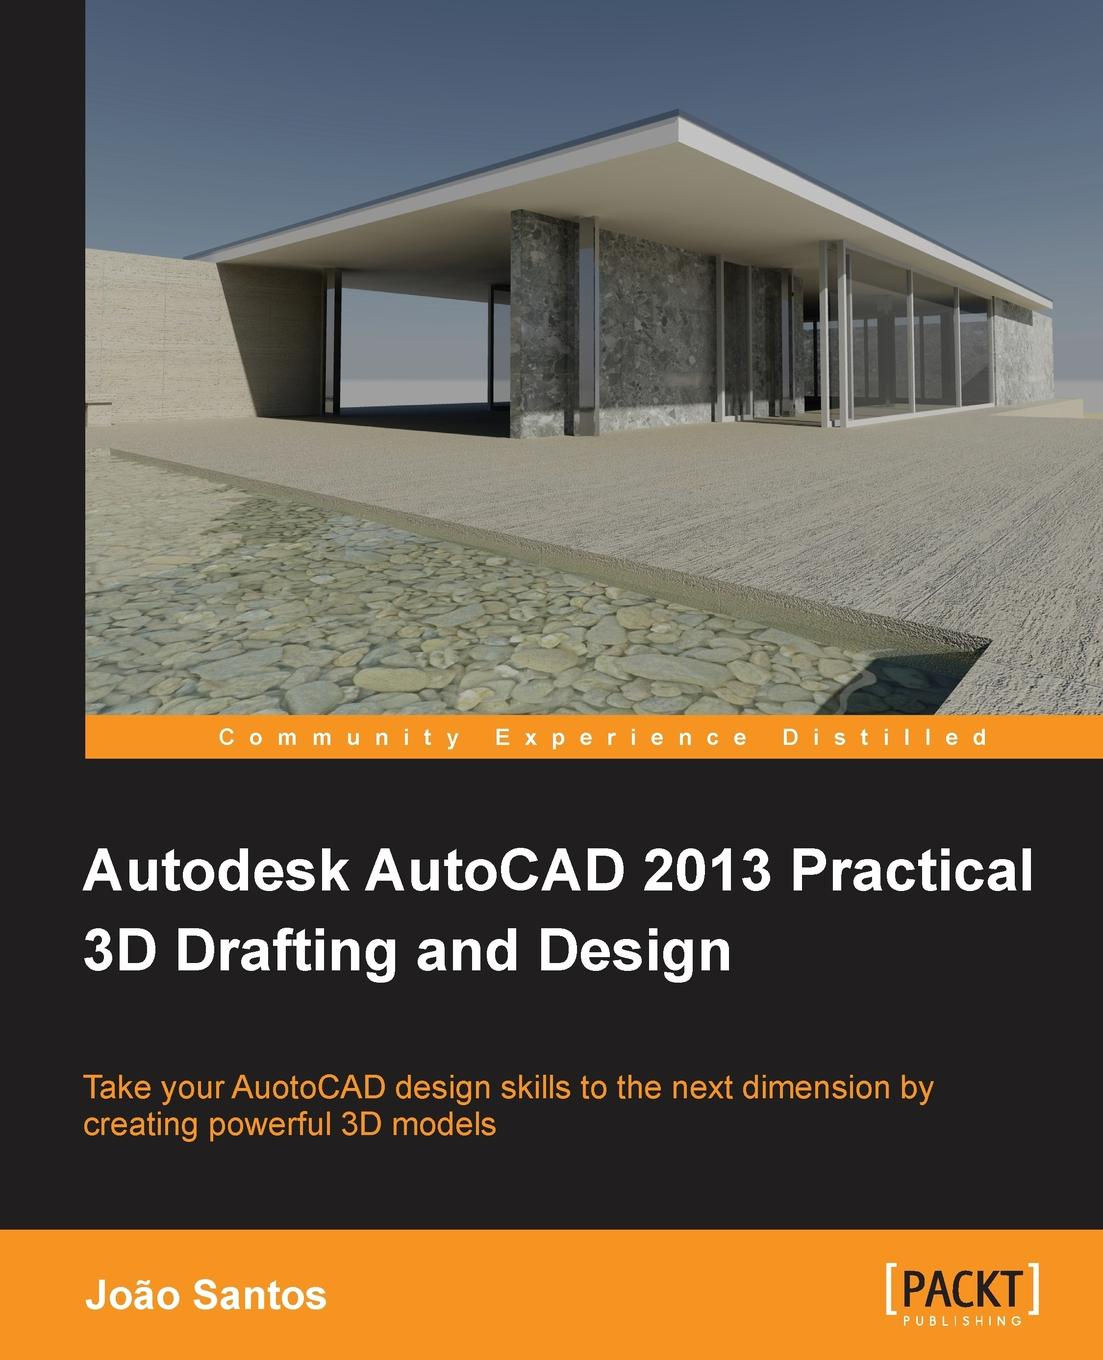 Joao Santos Autodesk AutoCAD 2013 Practical 3D Drafting and Design george omura mastering autocad 2016 and autocad lt 2016 autodesk official press